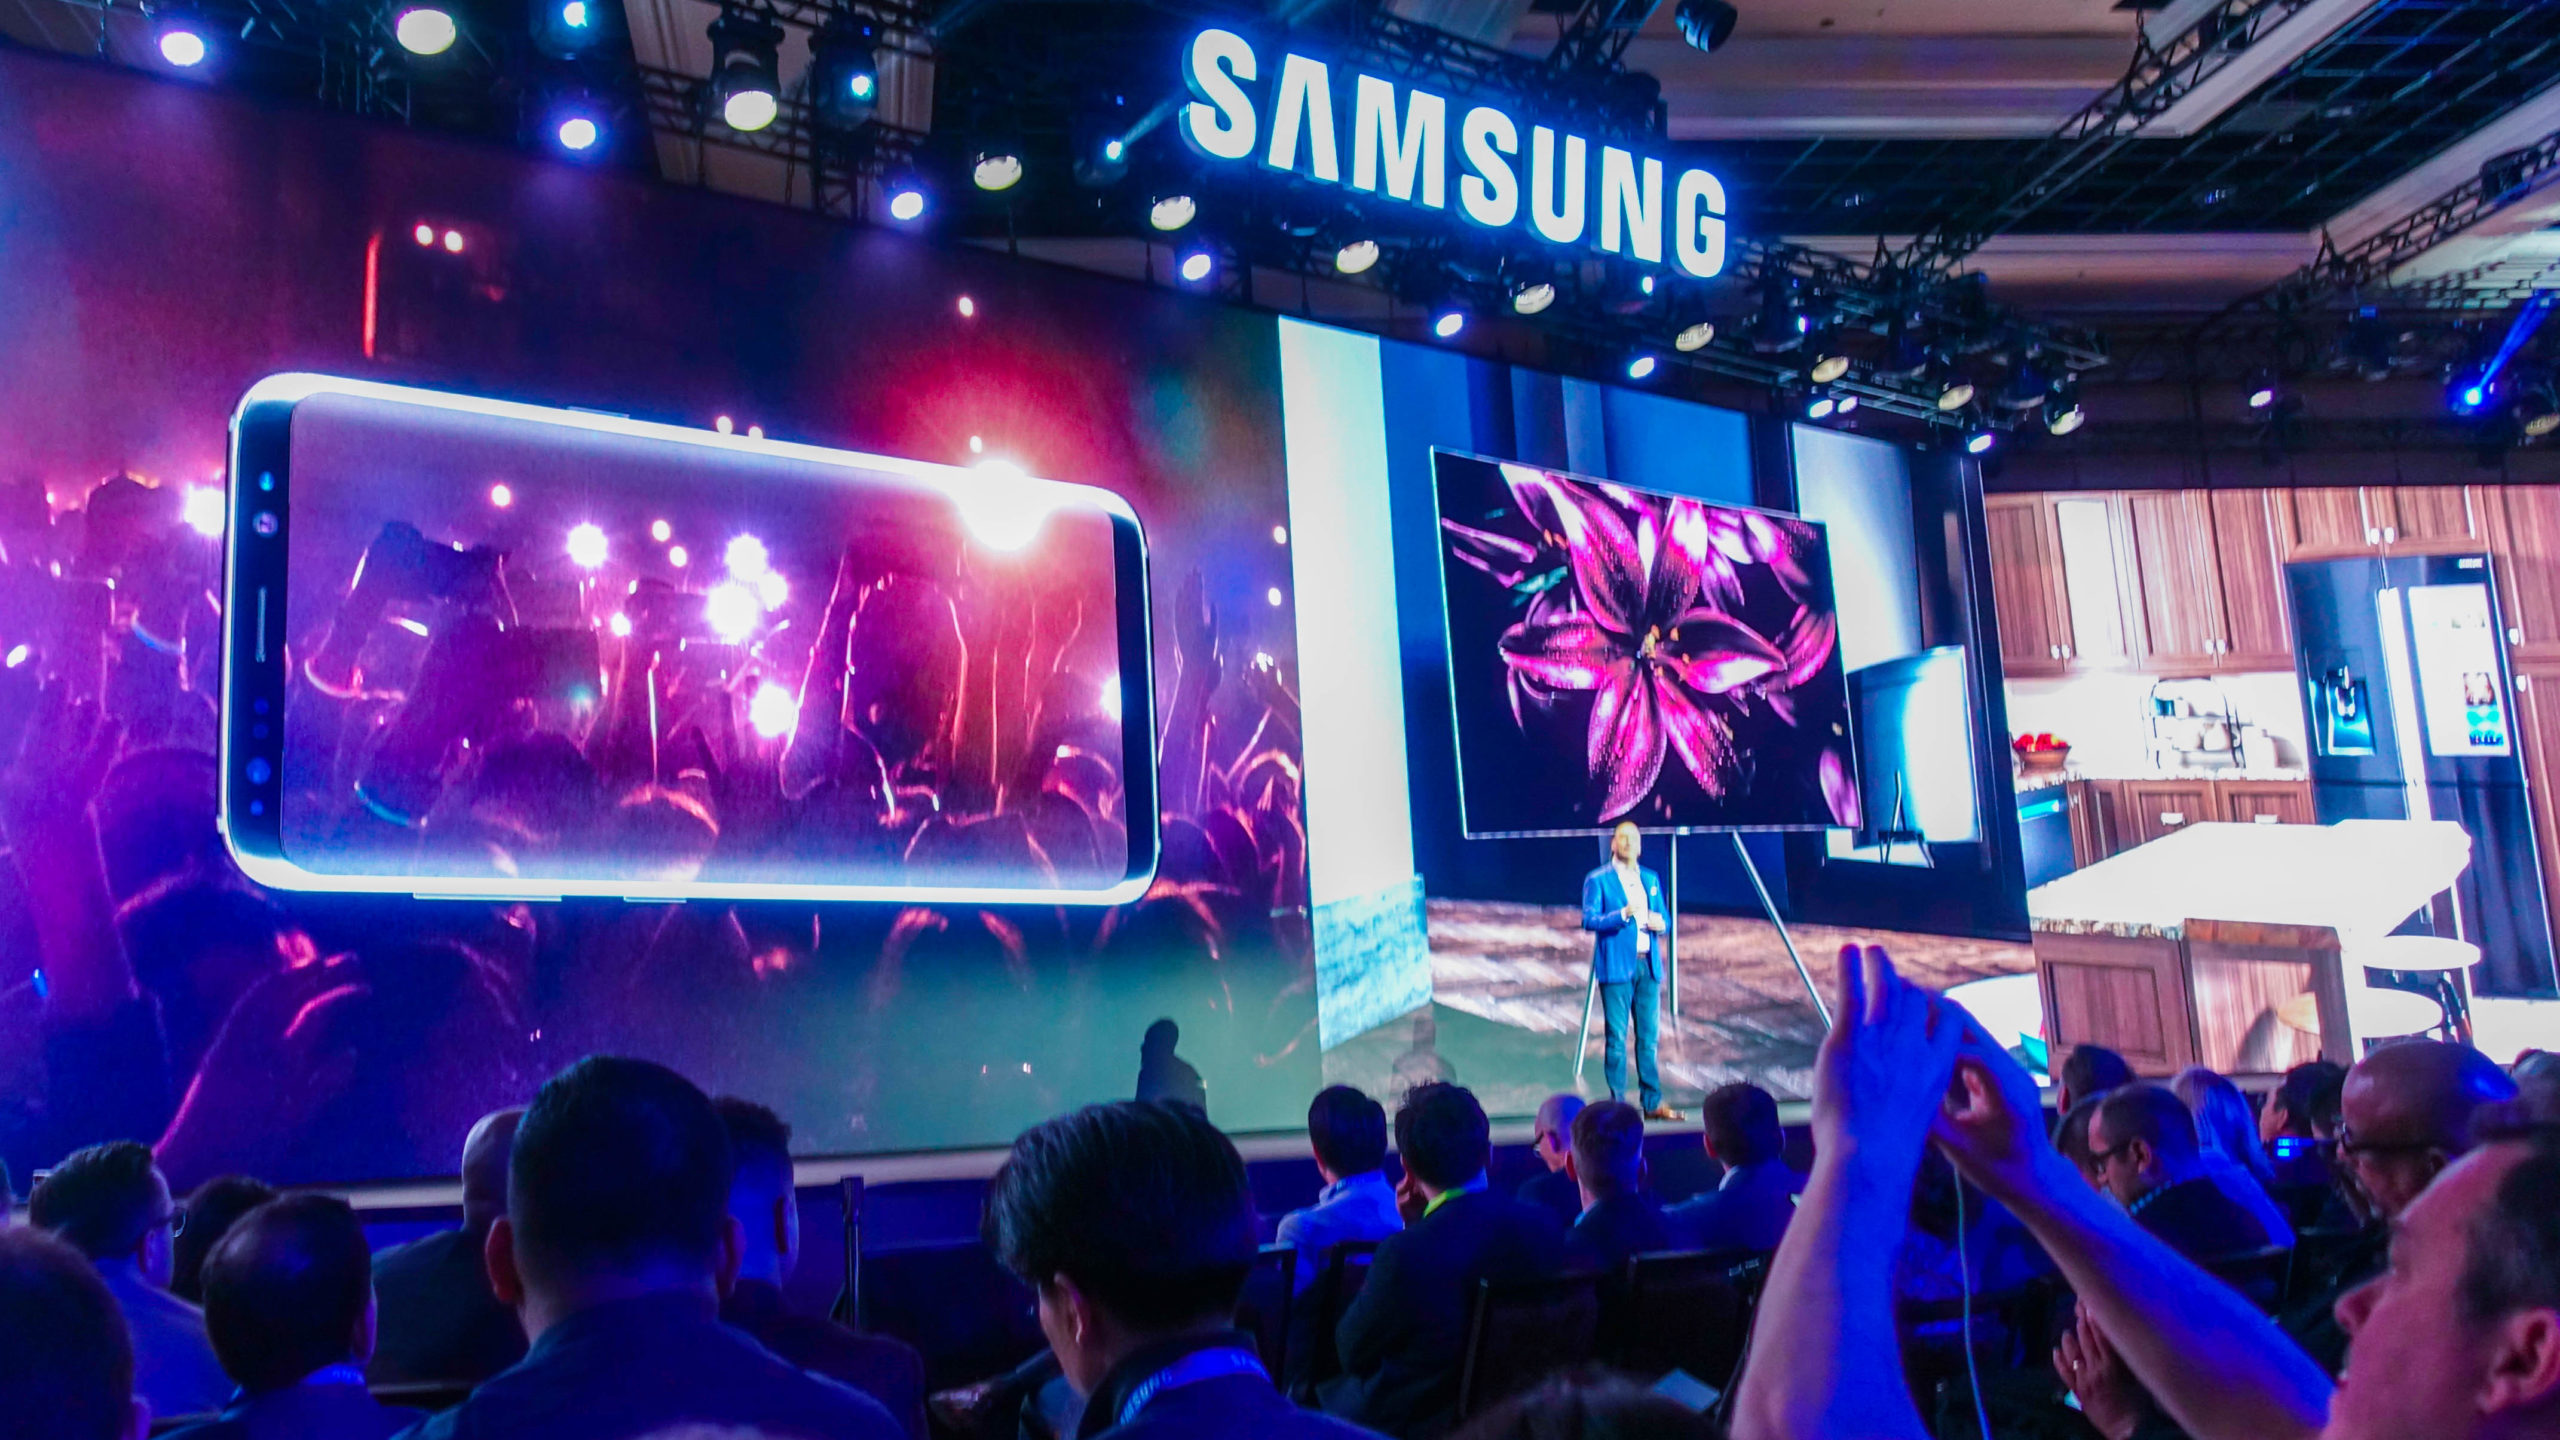 Samsung Galaxy S13 Release Date and Price